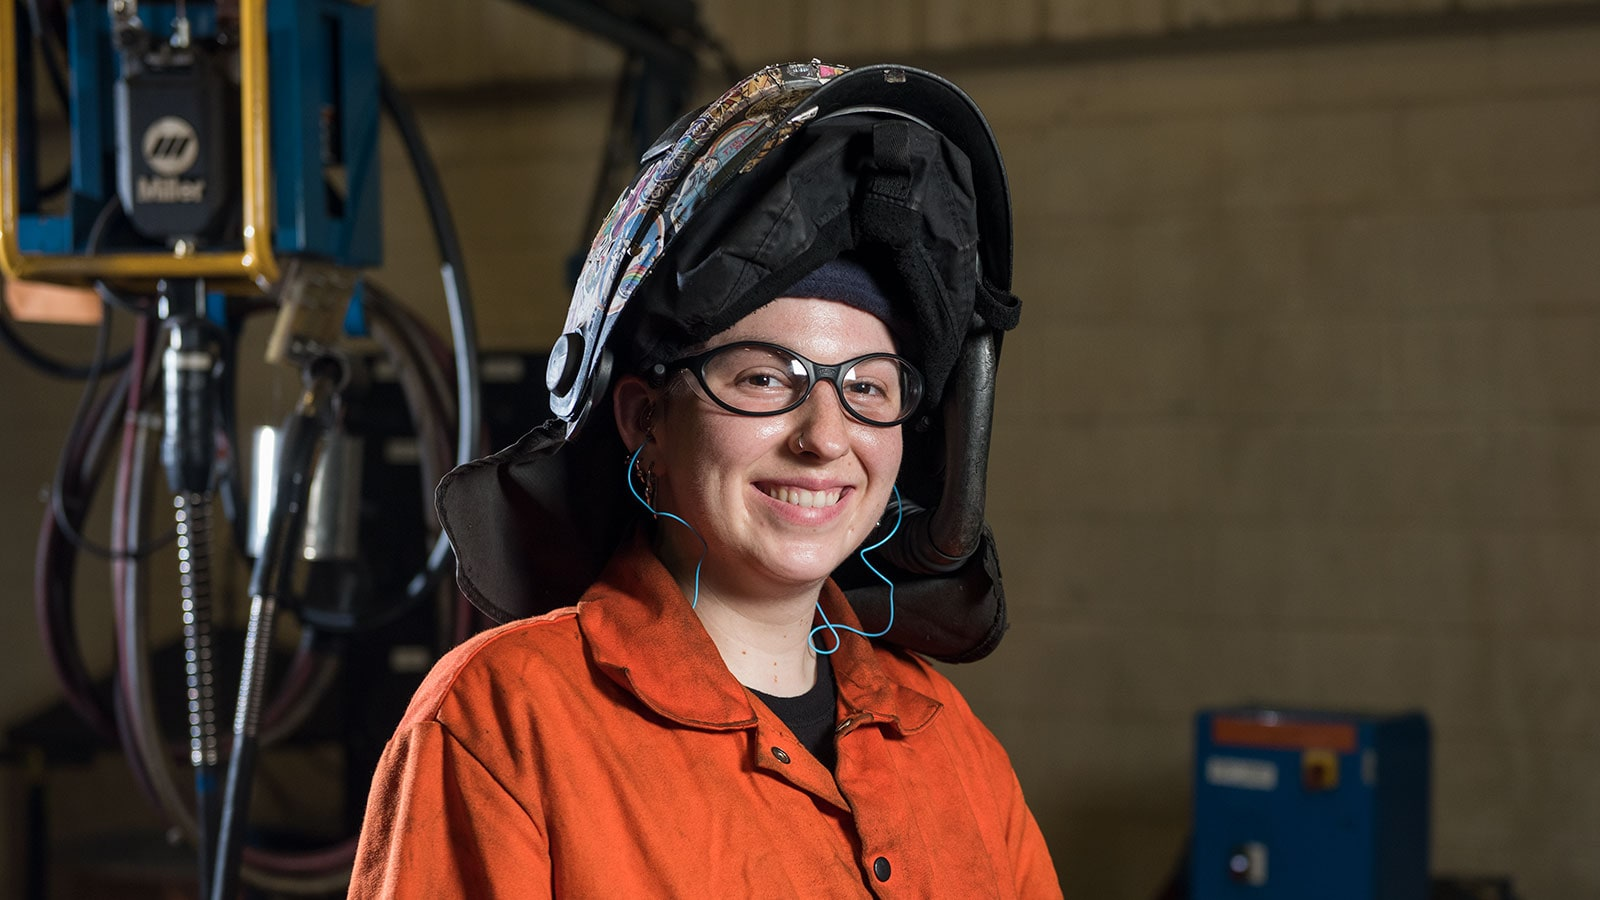 Sam McCart, a welder, shown working in the Deere-Hitachi factory